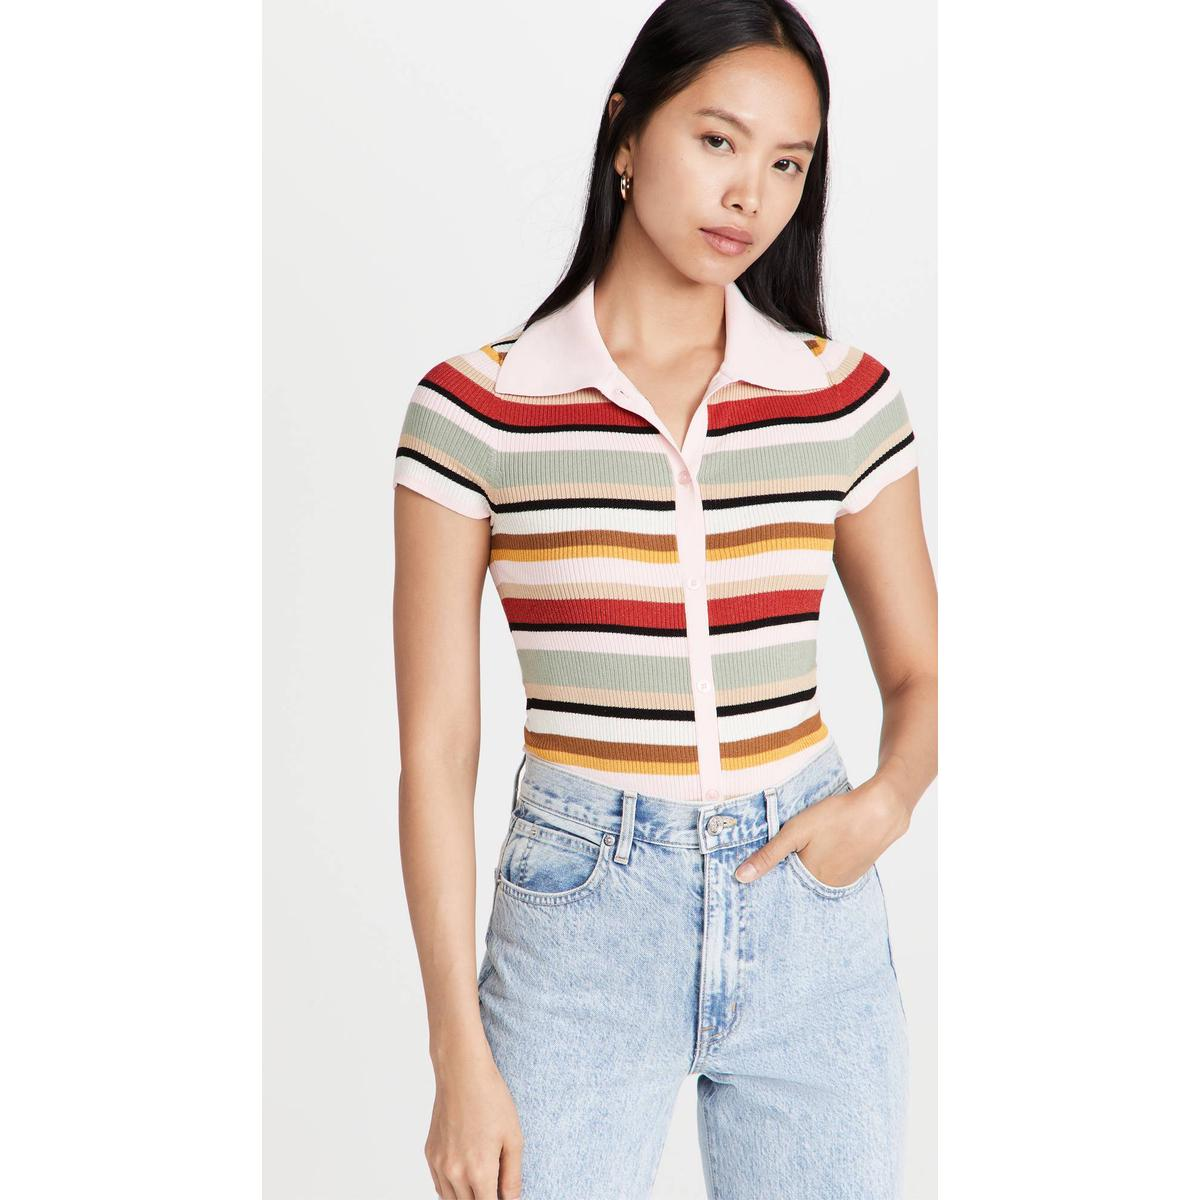 Purchase Alice Olivia Colleen striped polo shirt polo shirt womens 2021 NEW